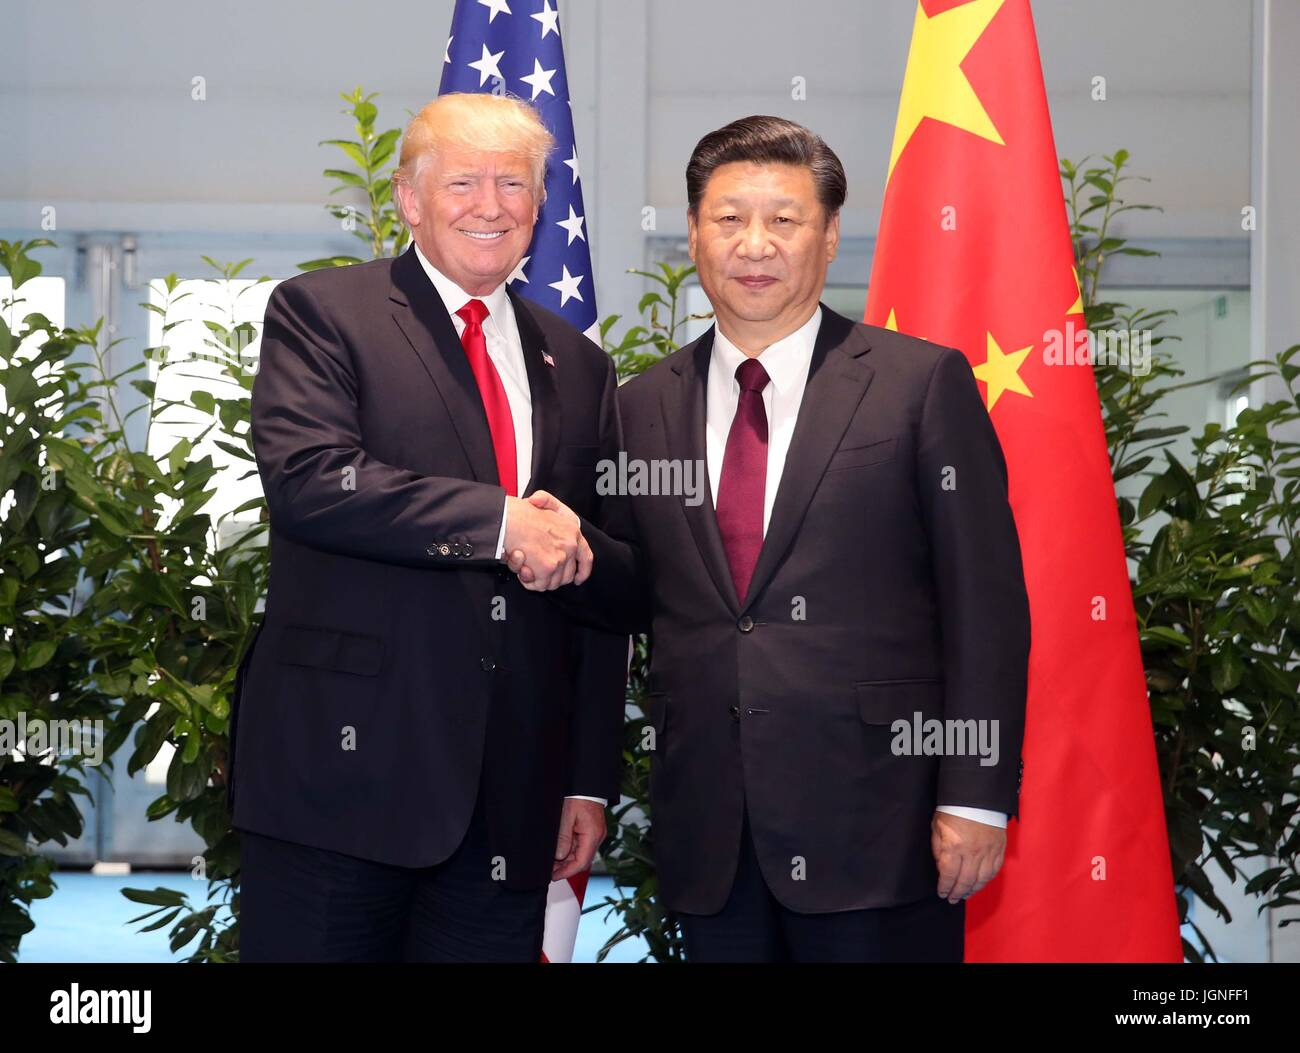 Hamburg, Germany. 8th July, 2017. Chinese President Xi Jinping (R) meets with his U.S. counterpart Donald Trump - Stock Image